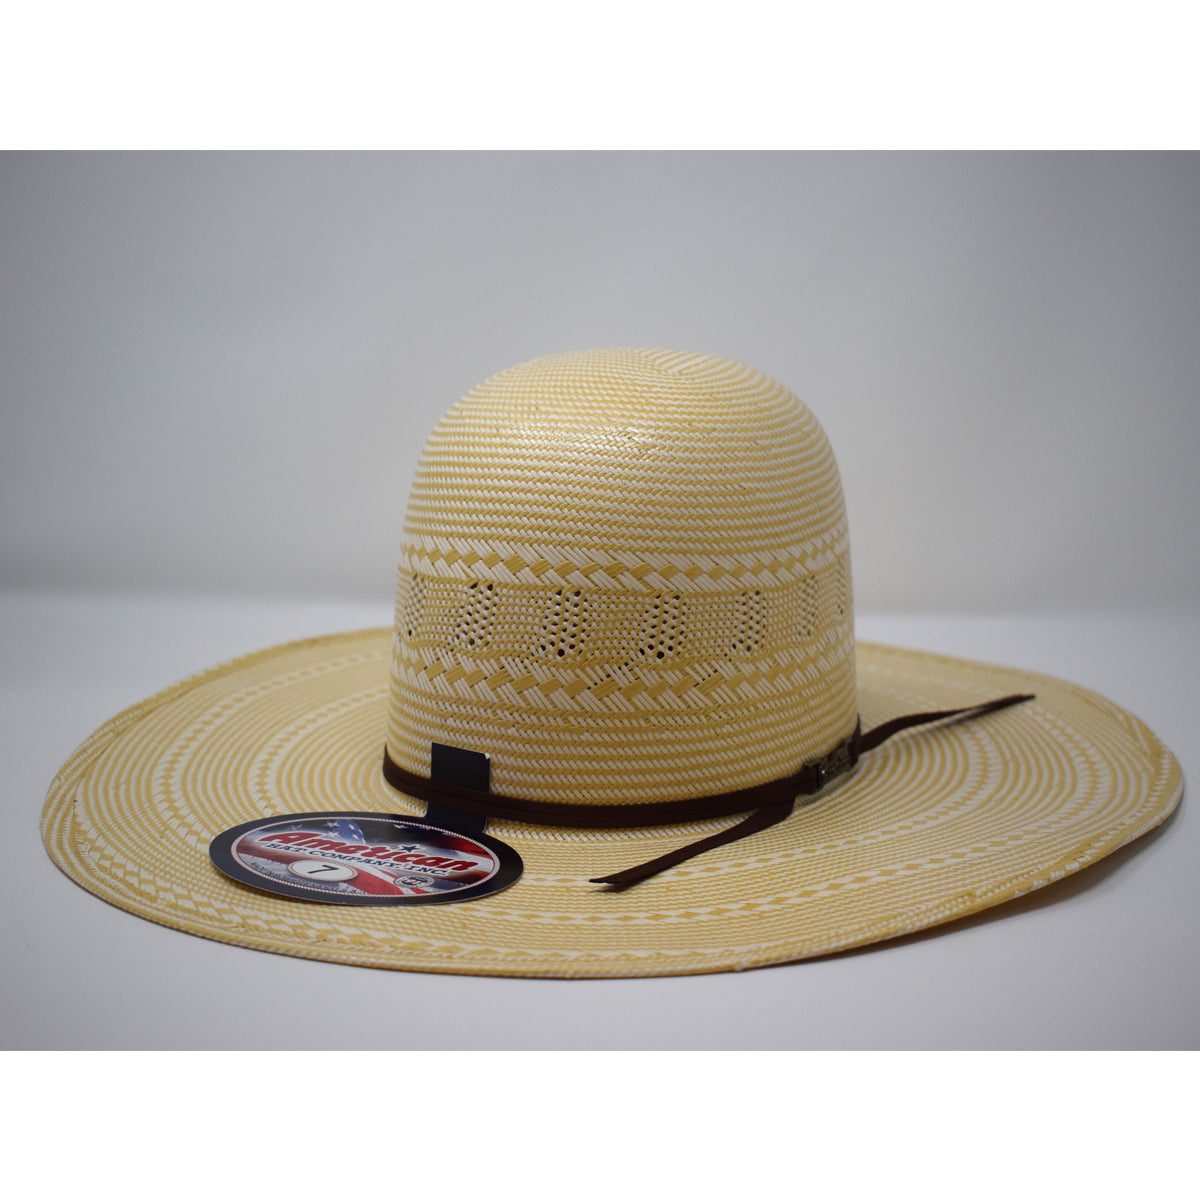 "American Hat Co. 4 1/2"" Brim Chocolate Ribbon Western Straw Hat"